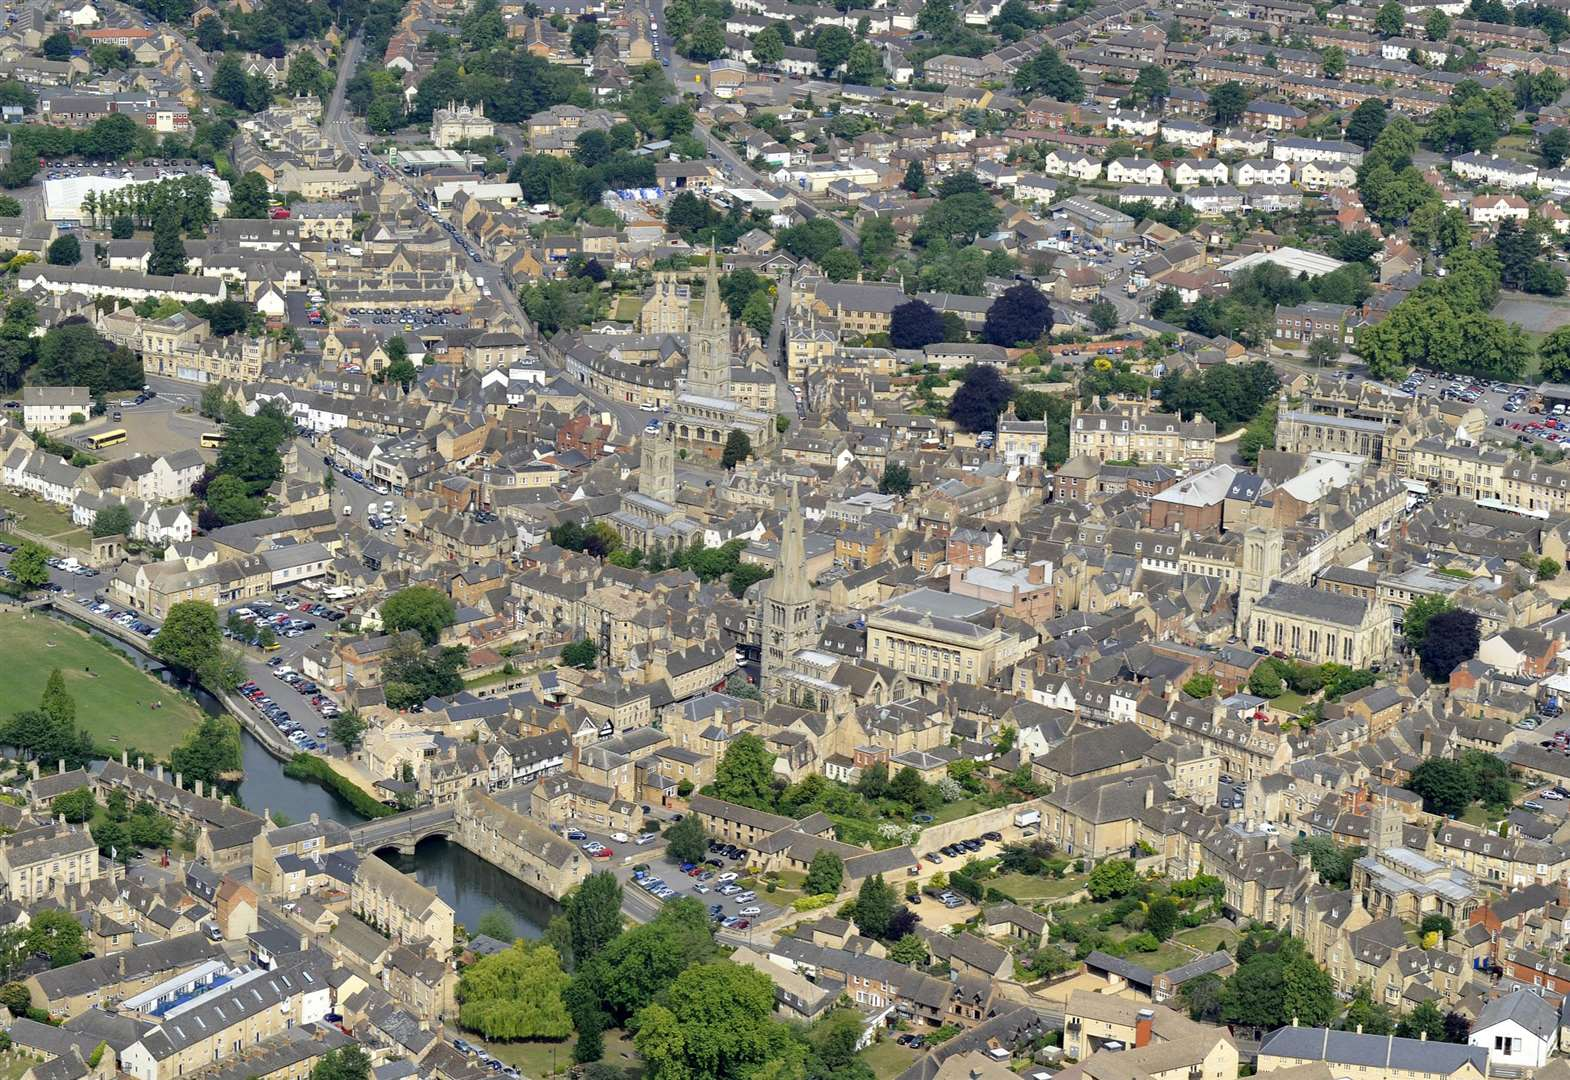 It's 60 per cent more expensive to live in Stamford than the rest of Lincolnshire according to new research by Lloyds Bank